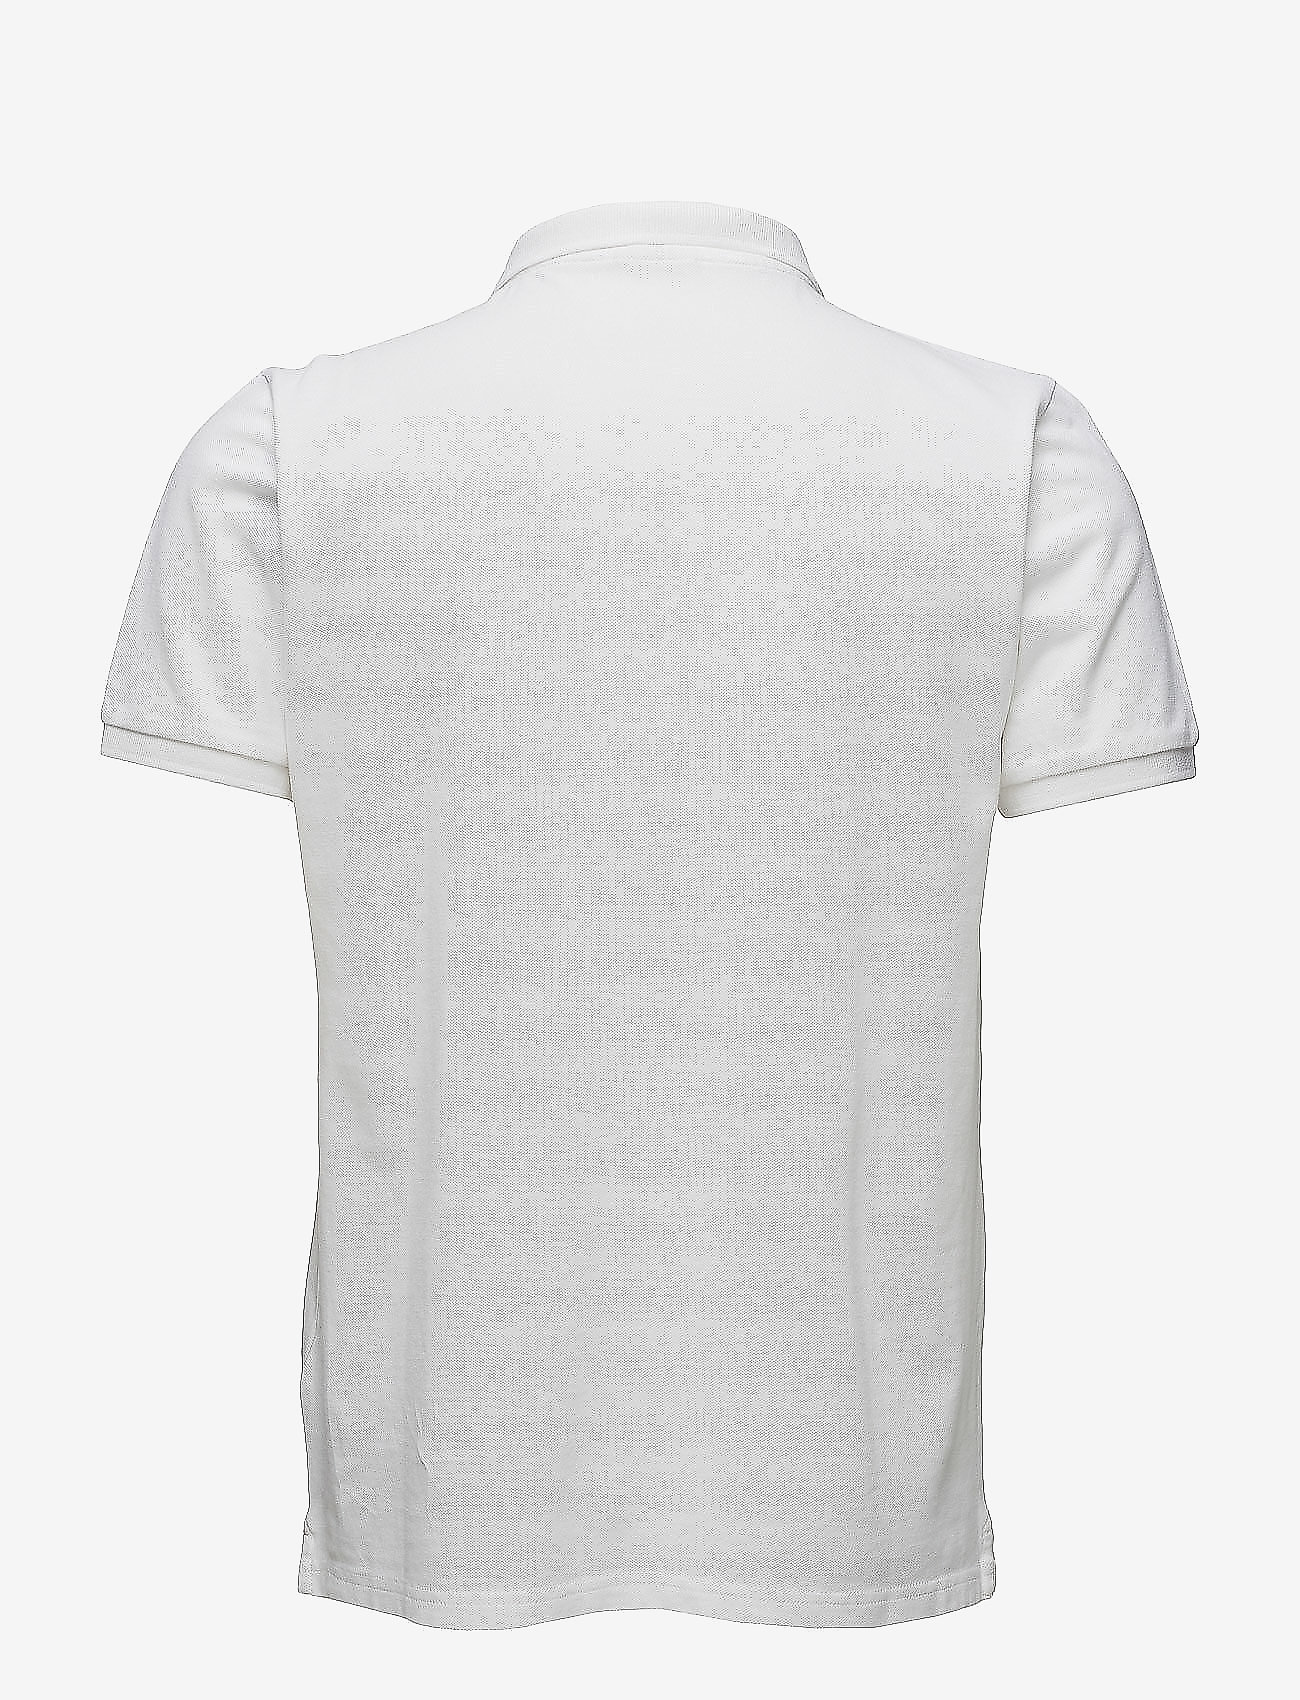 Knowledge Cotton Apparel - Pique Polo -  GOTS/Vegan - lyhythihaiset - bright white - 1